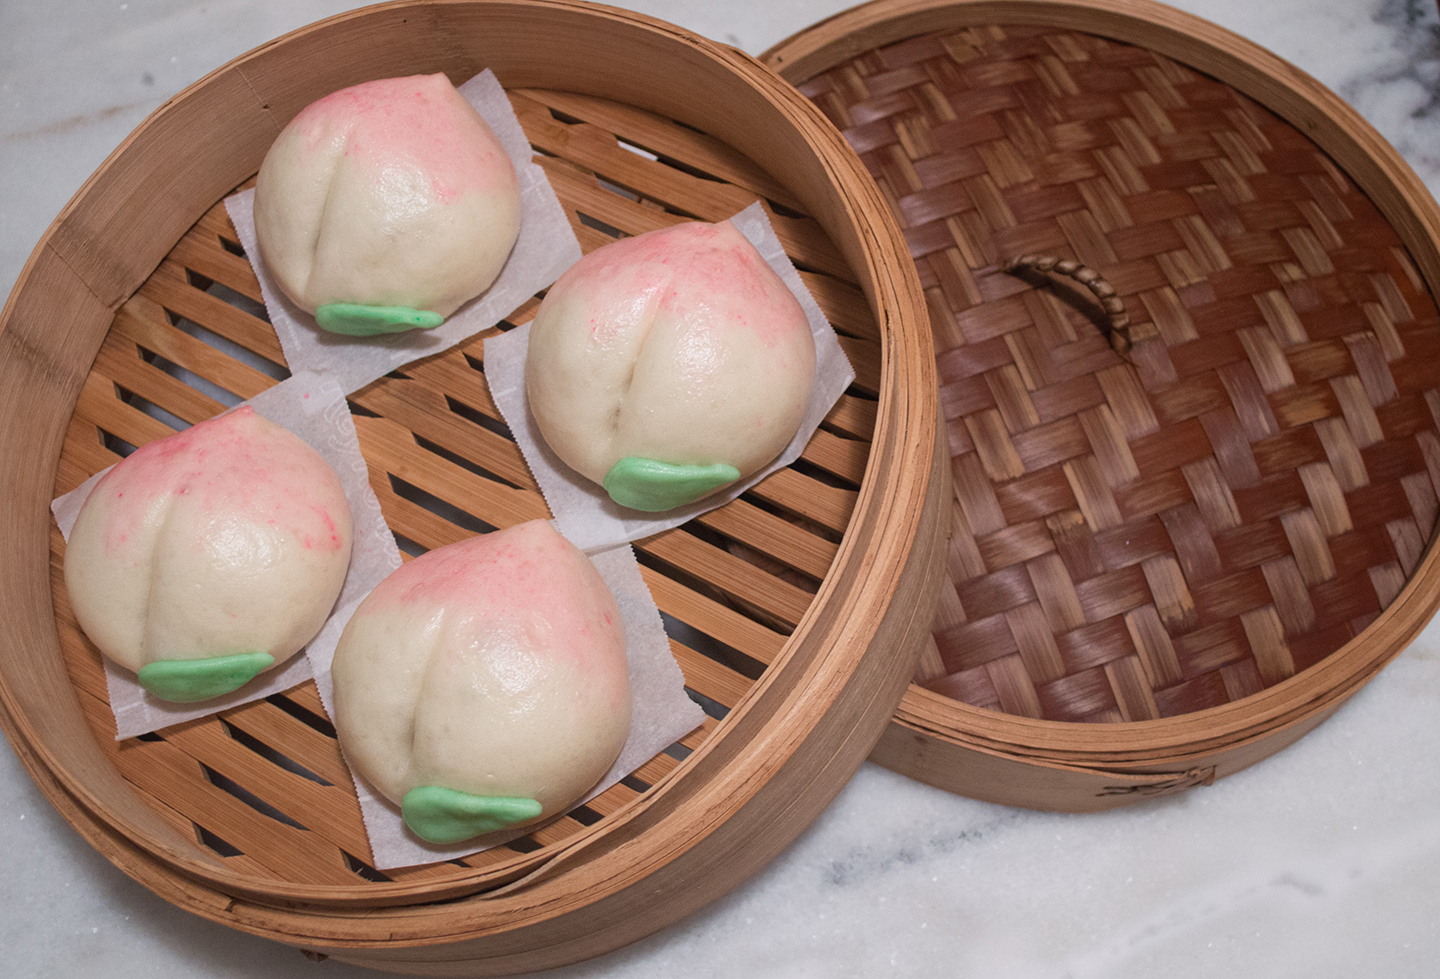 Shòutáo/Lián Róng Bāo (壽桃/蓮蓉包) - Longevity Peach Lotus Paste Steamed Buns